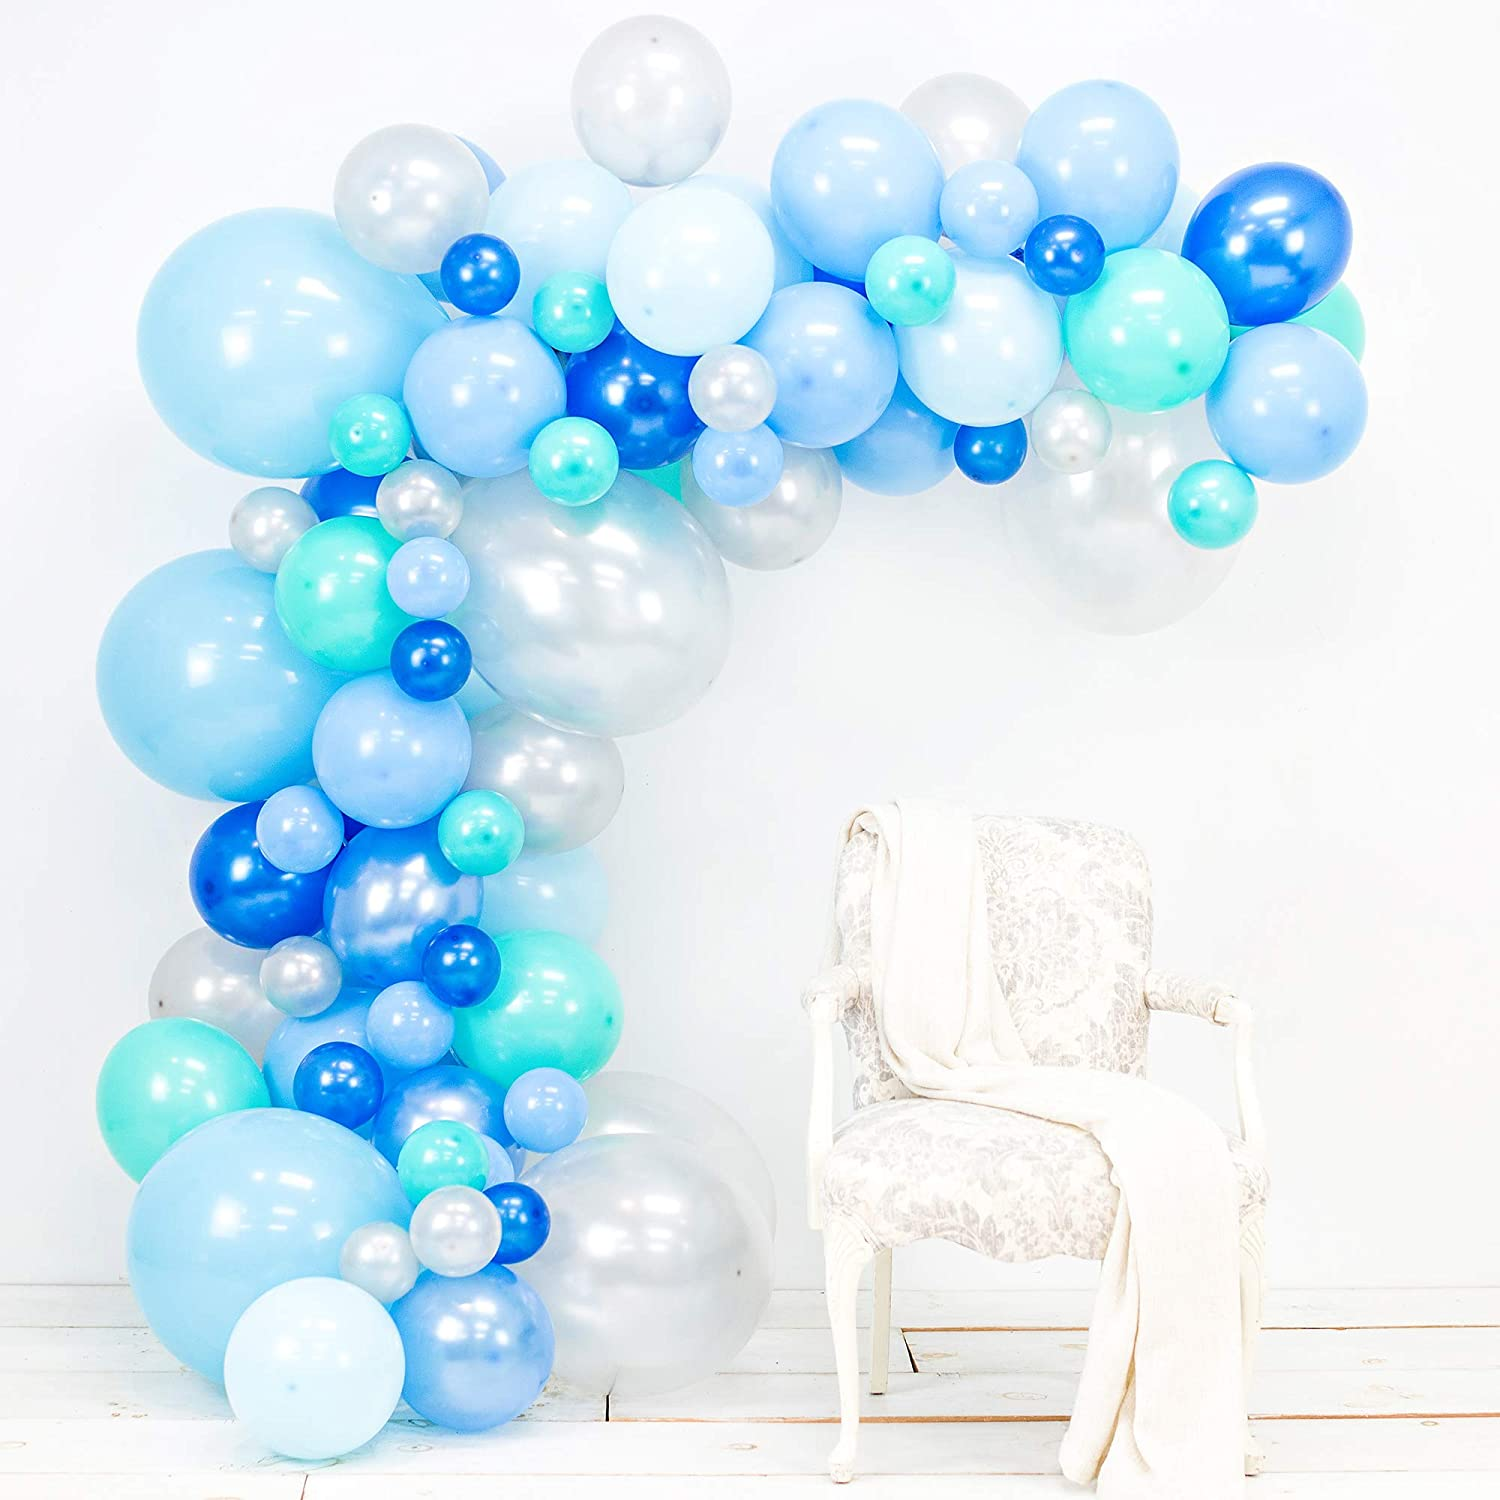 142X Blue Balloons+Balloon Arch Kit Set Party Baloons Wedding Garland Home Decor